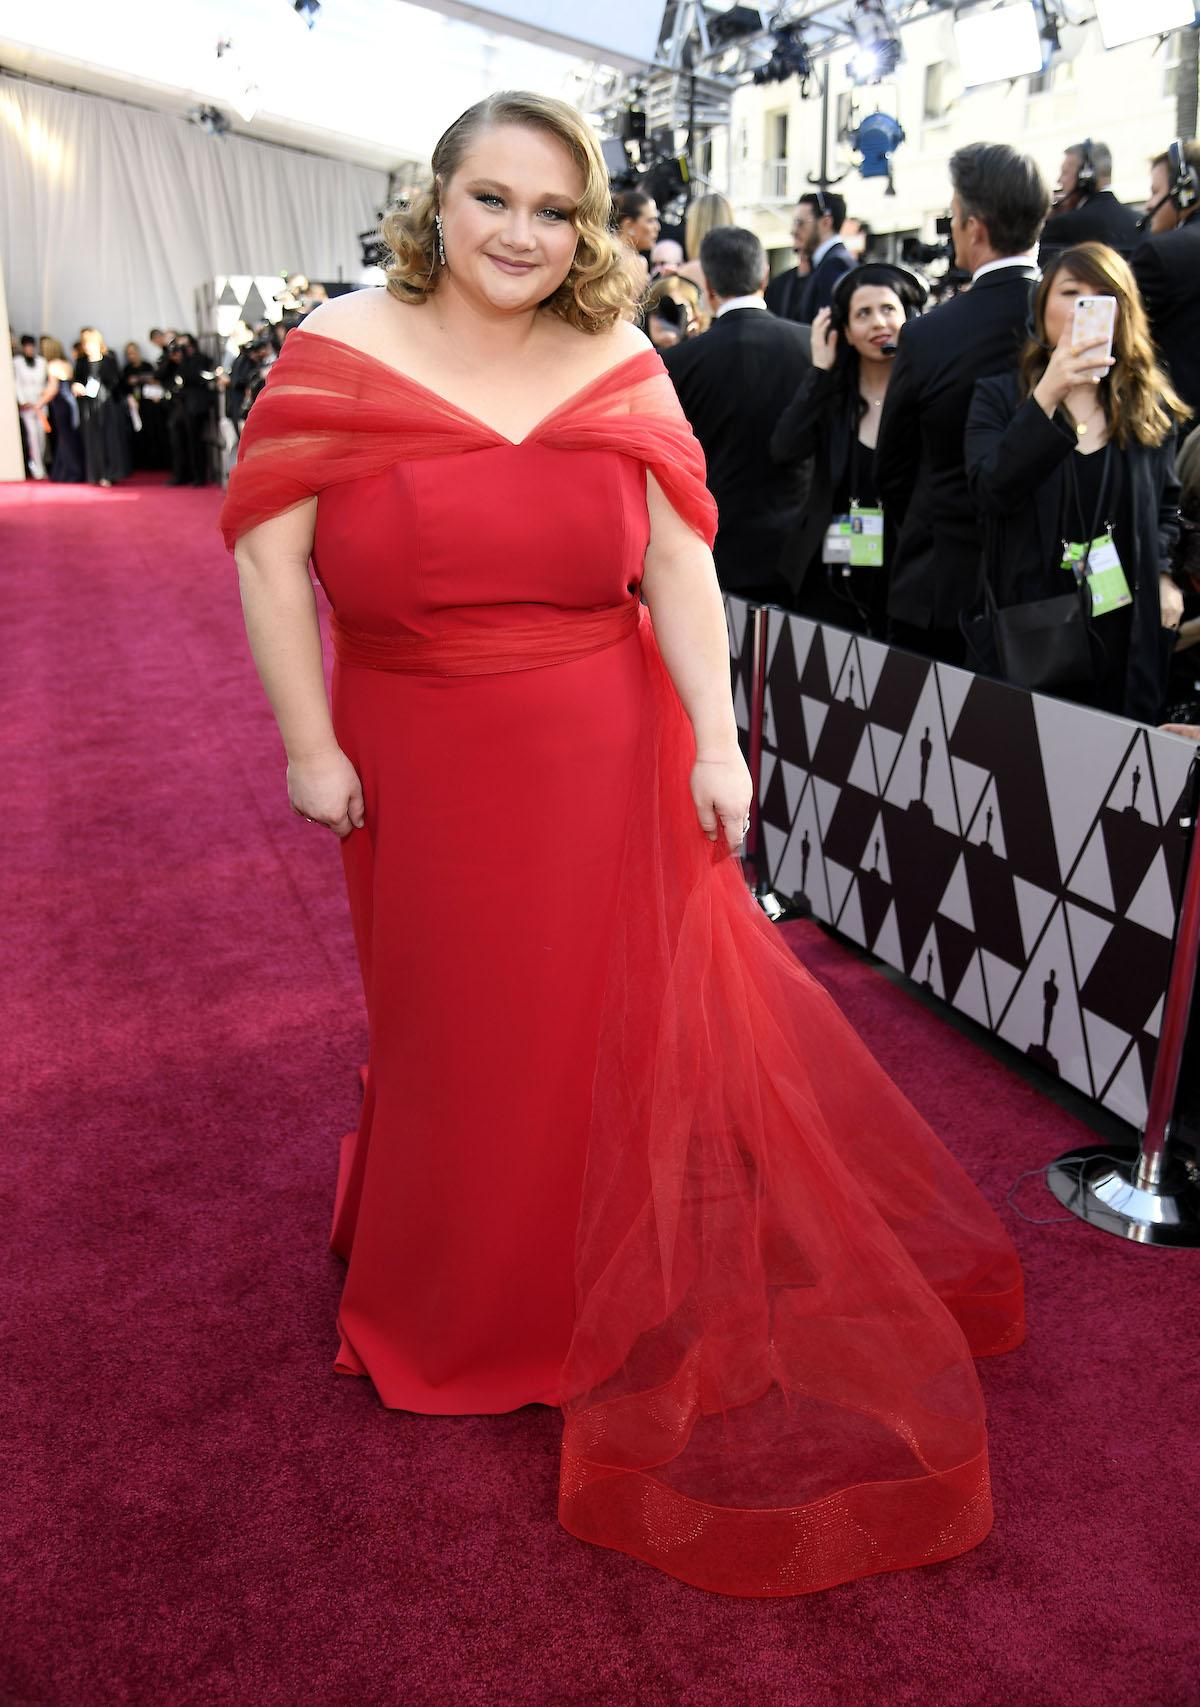 danielle-macdonald-oscars-sustainable-1551111127473-1551111129495.jpg